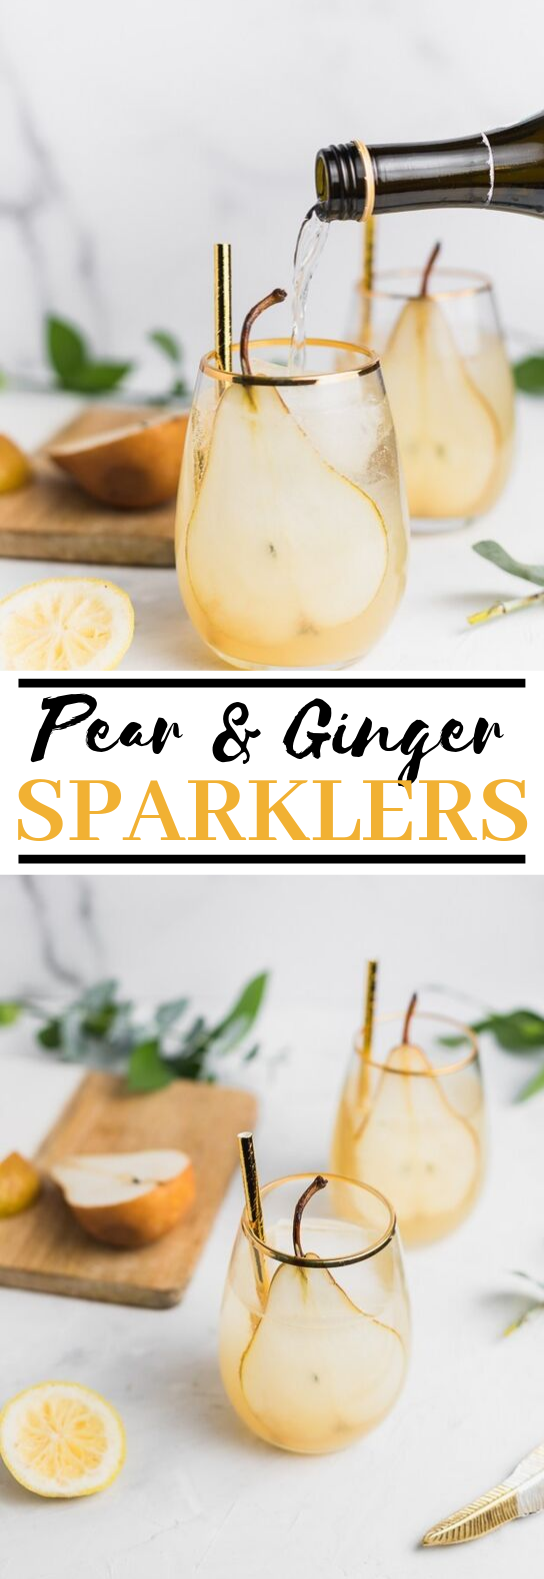 Pear and Ginger Sparklers #drinks #cocktails